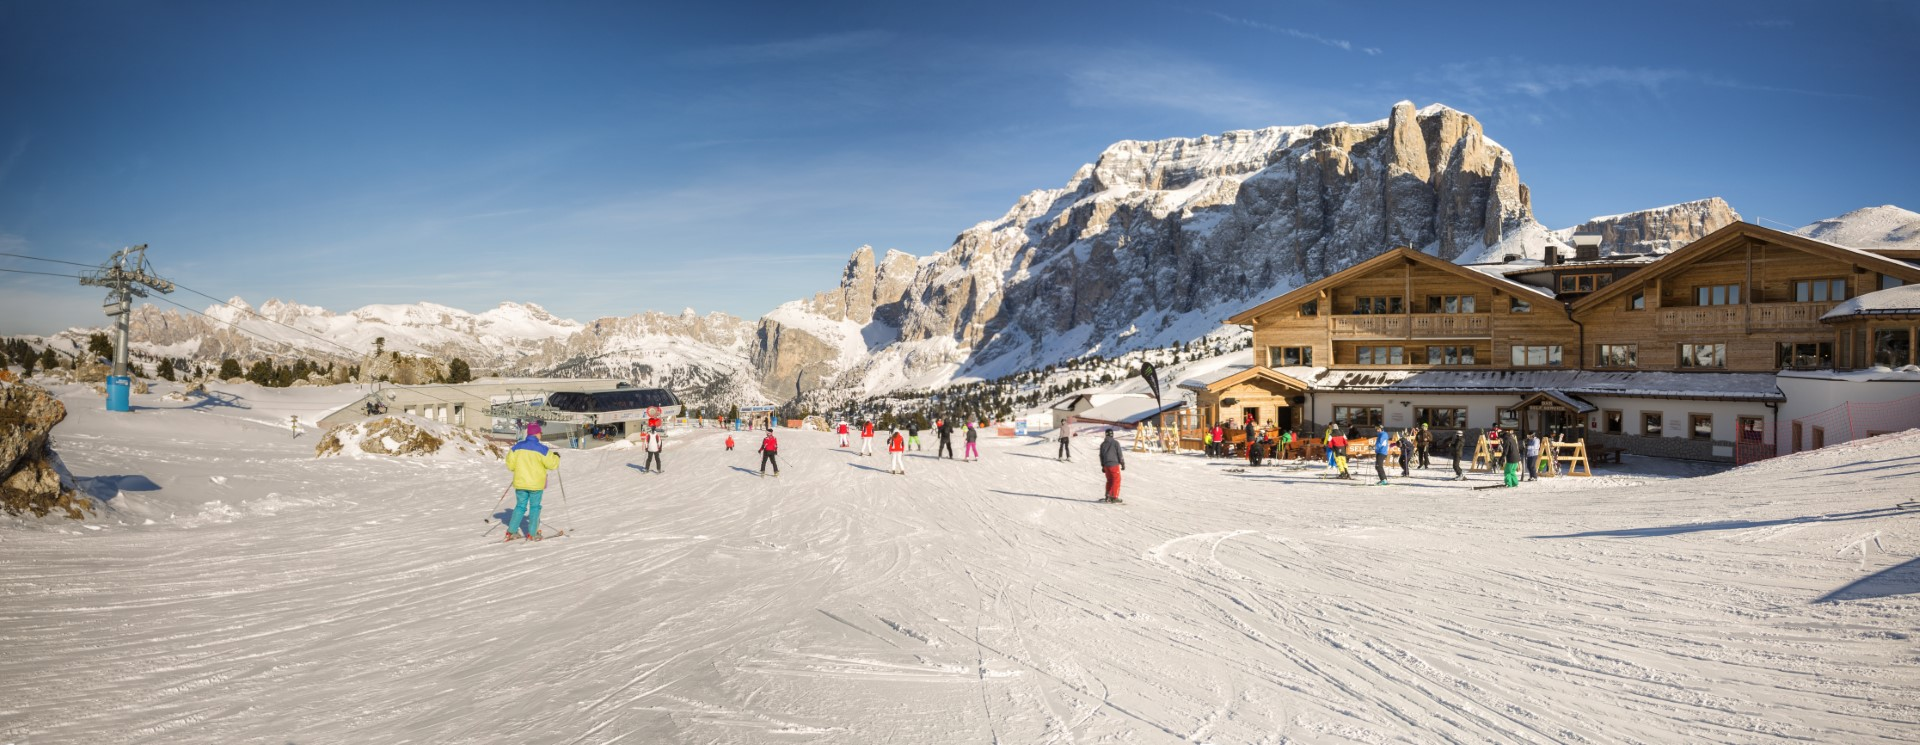 Dolomiti Superski Skipass